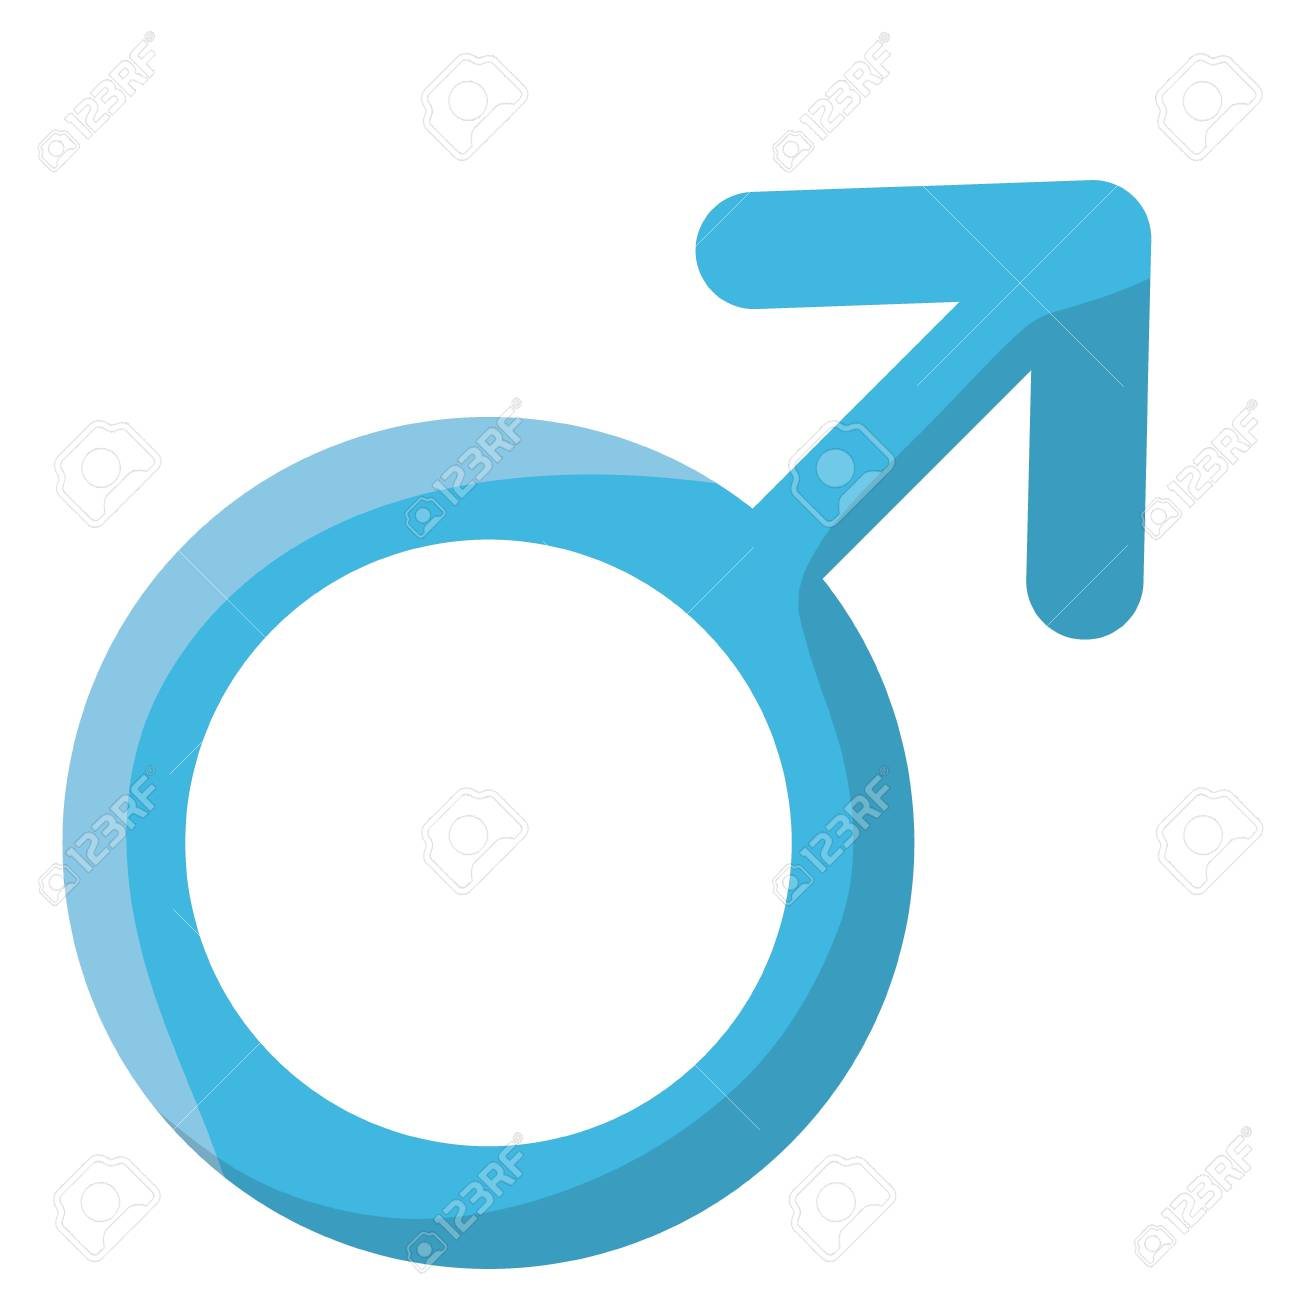 male gender icon over white background vector illustration royalty free cliparts vectors and stock illustration image 76566709 male gender icon over white background vector illustration